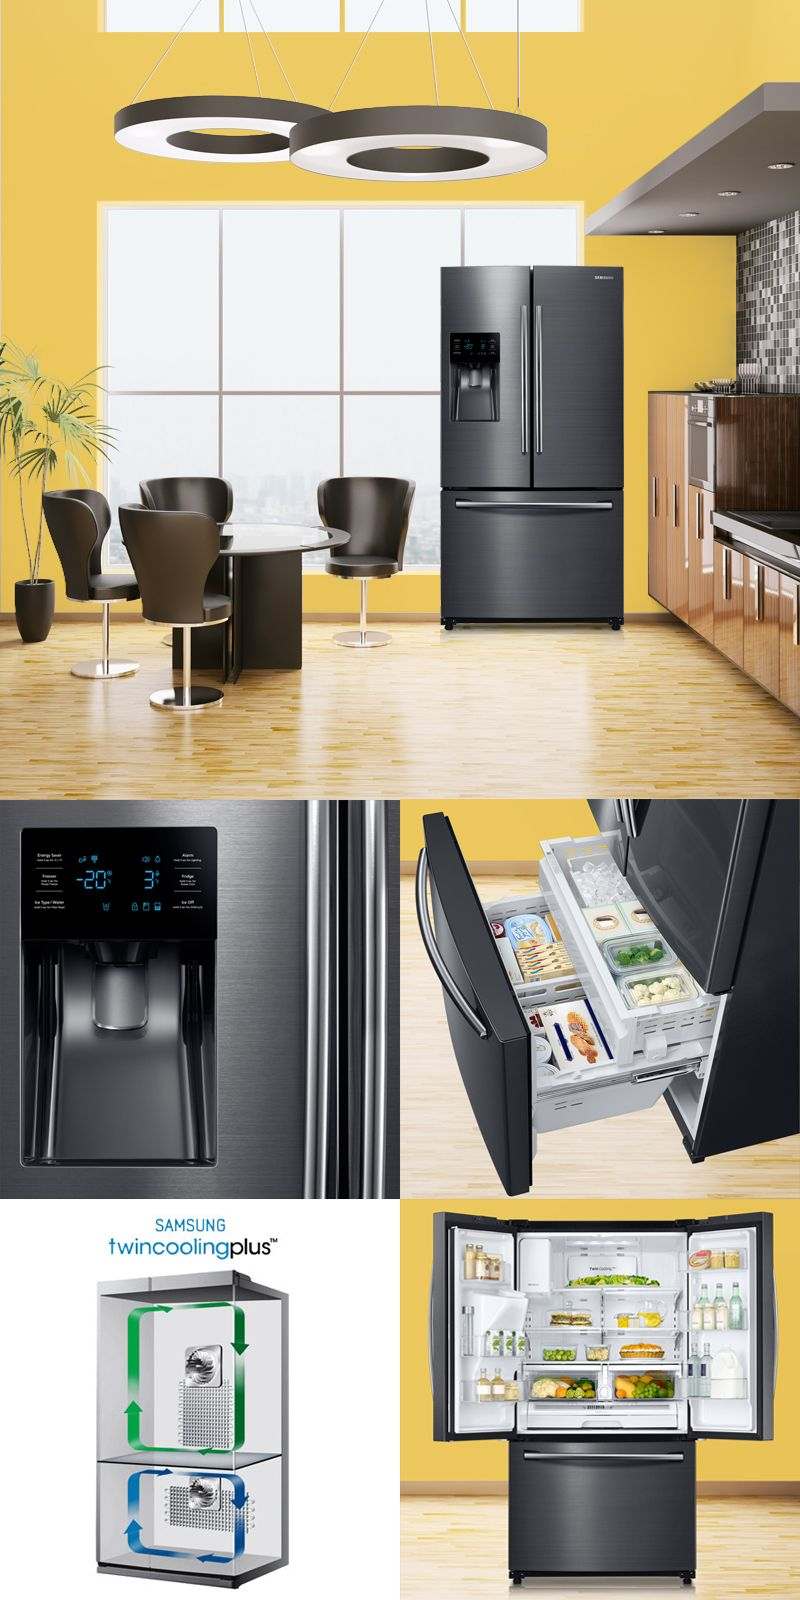 Samsung French Door Refrigerator With Twin Cooling Plus Kitchen Interior French Doors Interior Design Kitchen